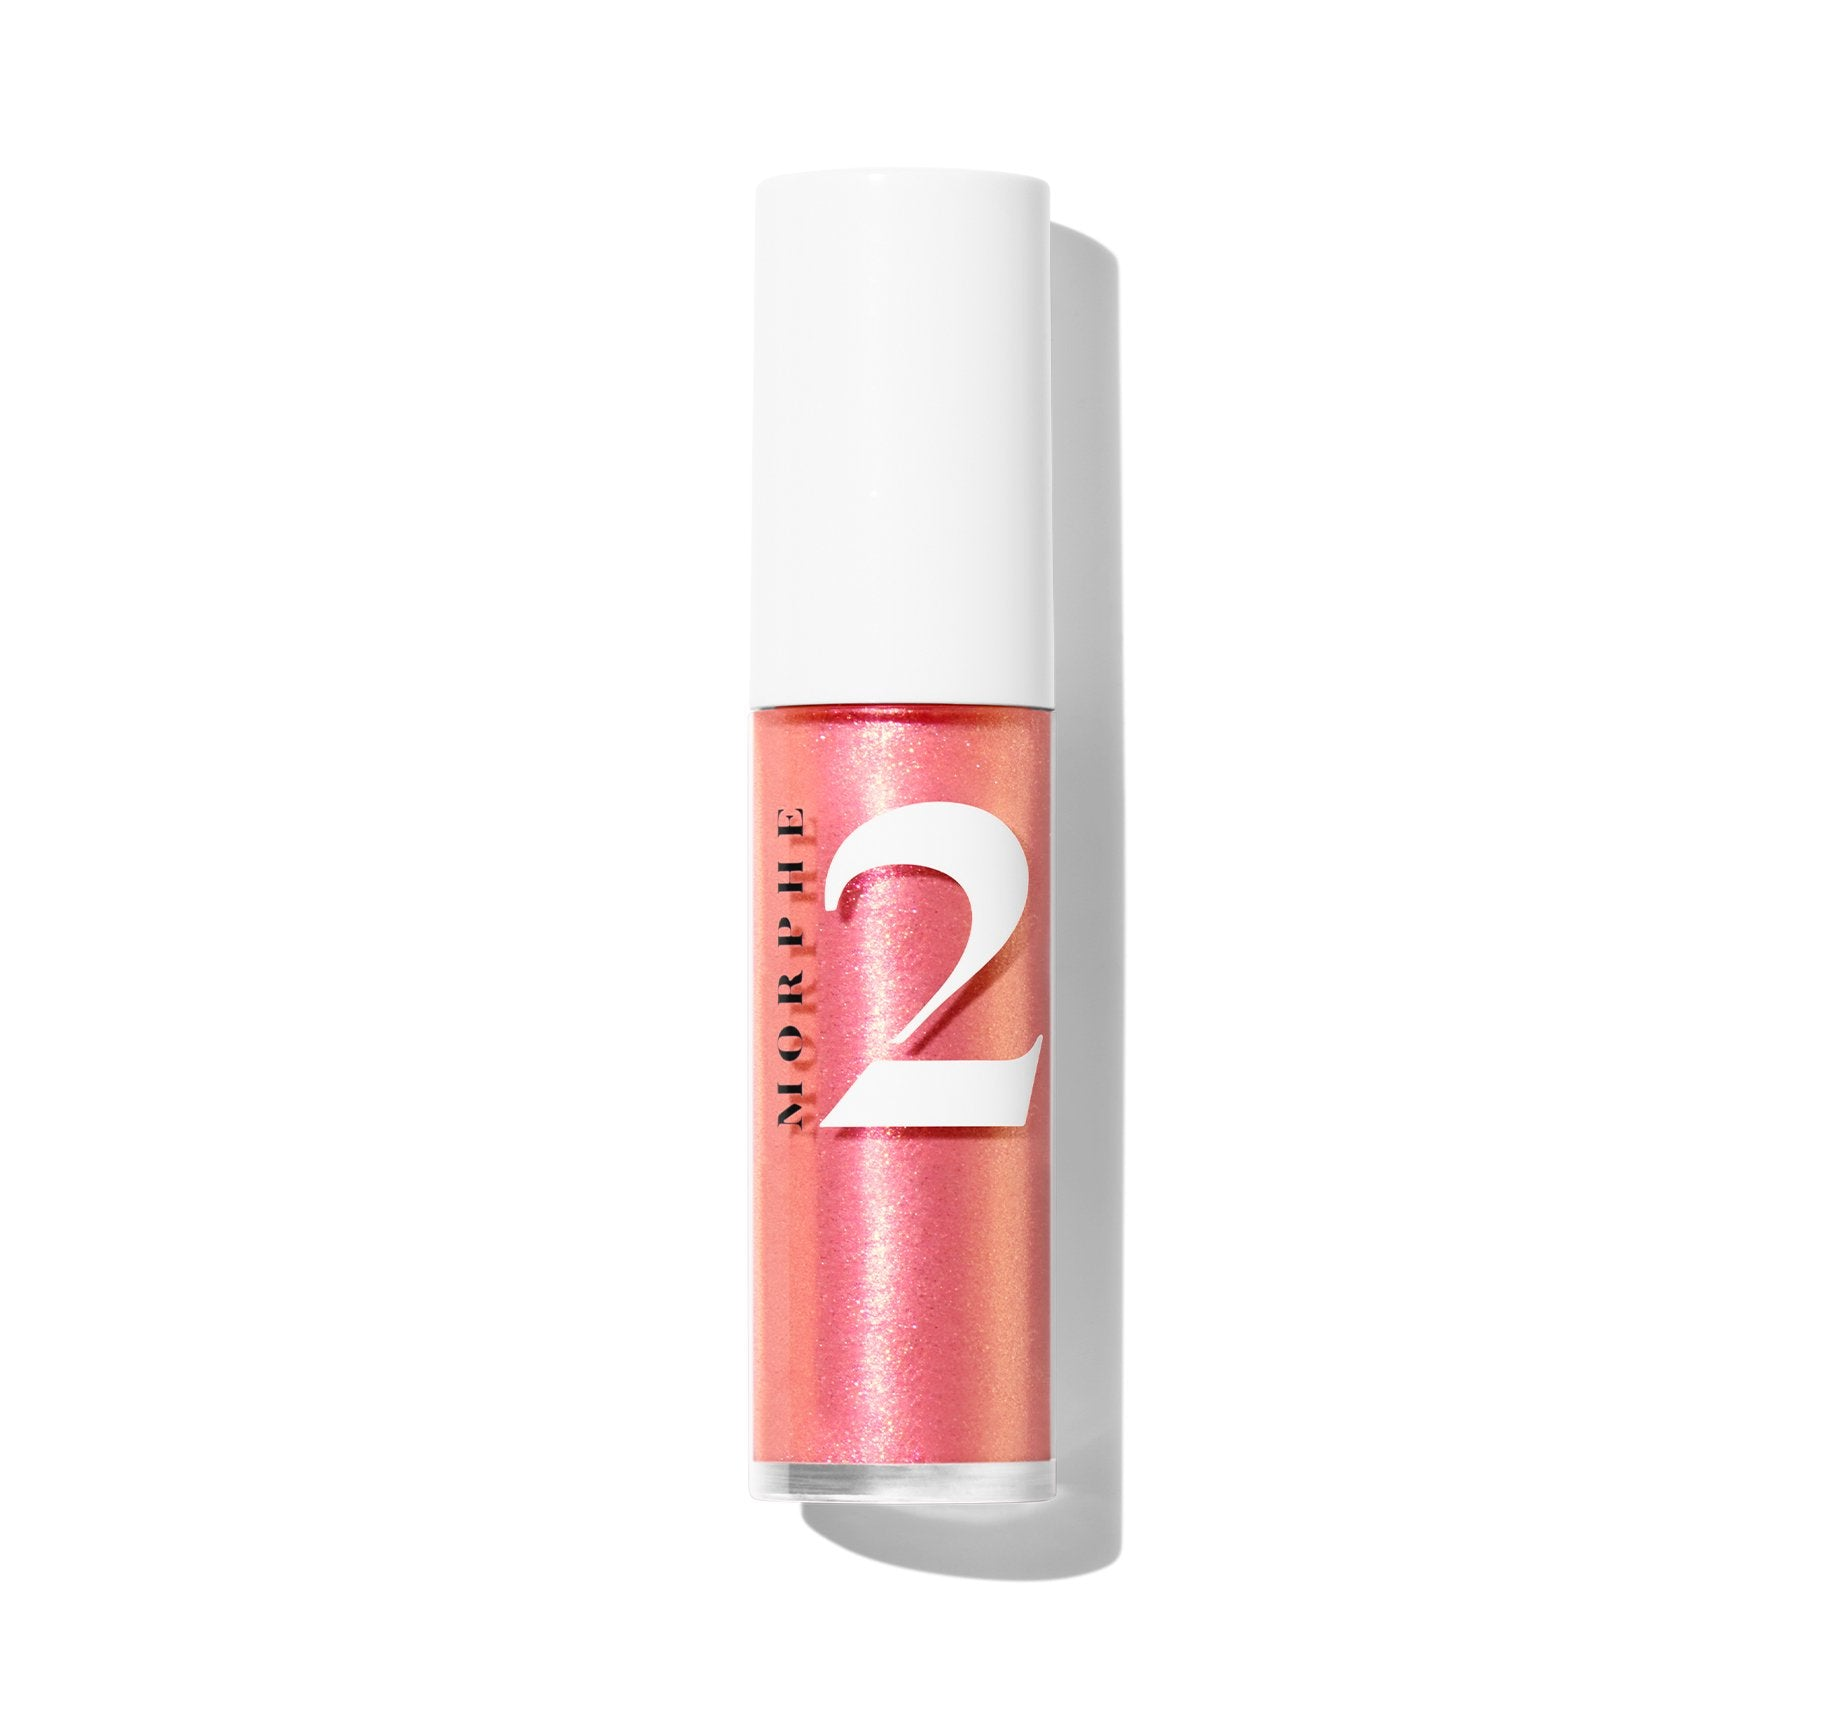 HAPPY GLAZE LIP GLOSS - GRATEFUL, view larger image